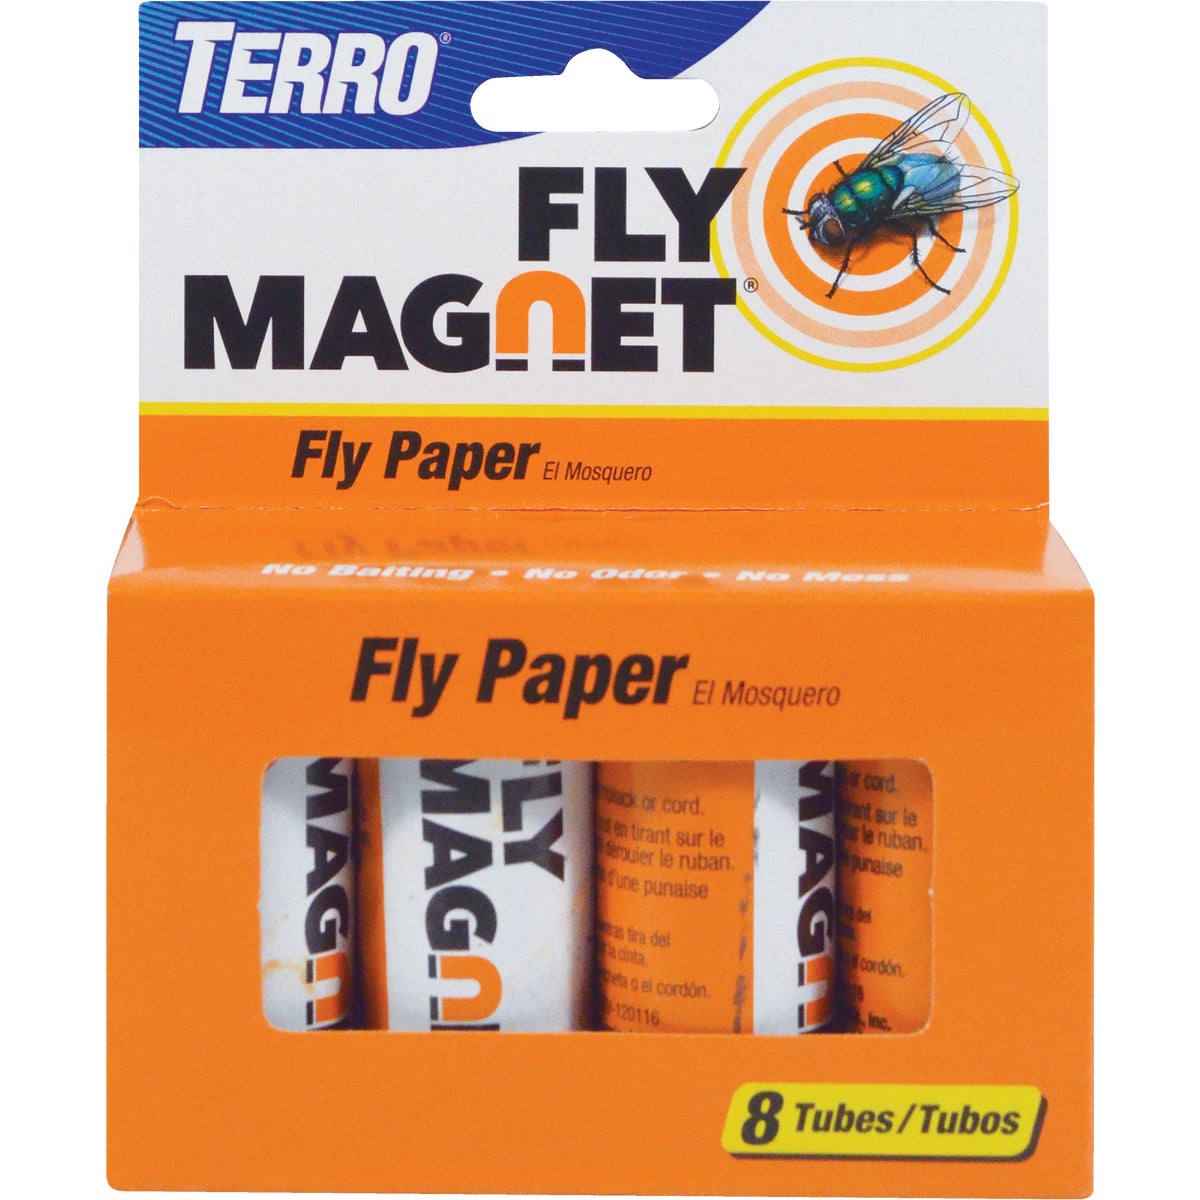 8PK FLY PAPER - HG-31108 by United Industries Co